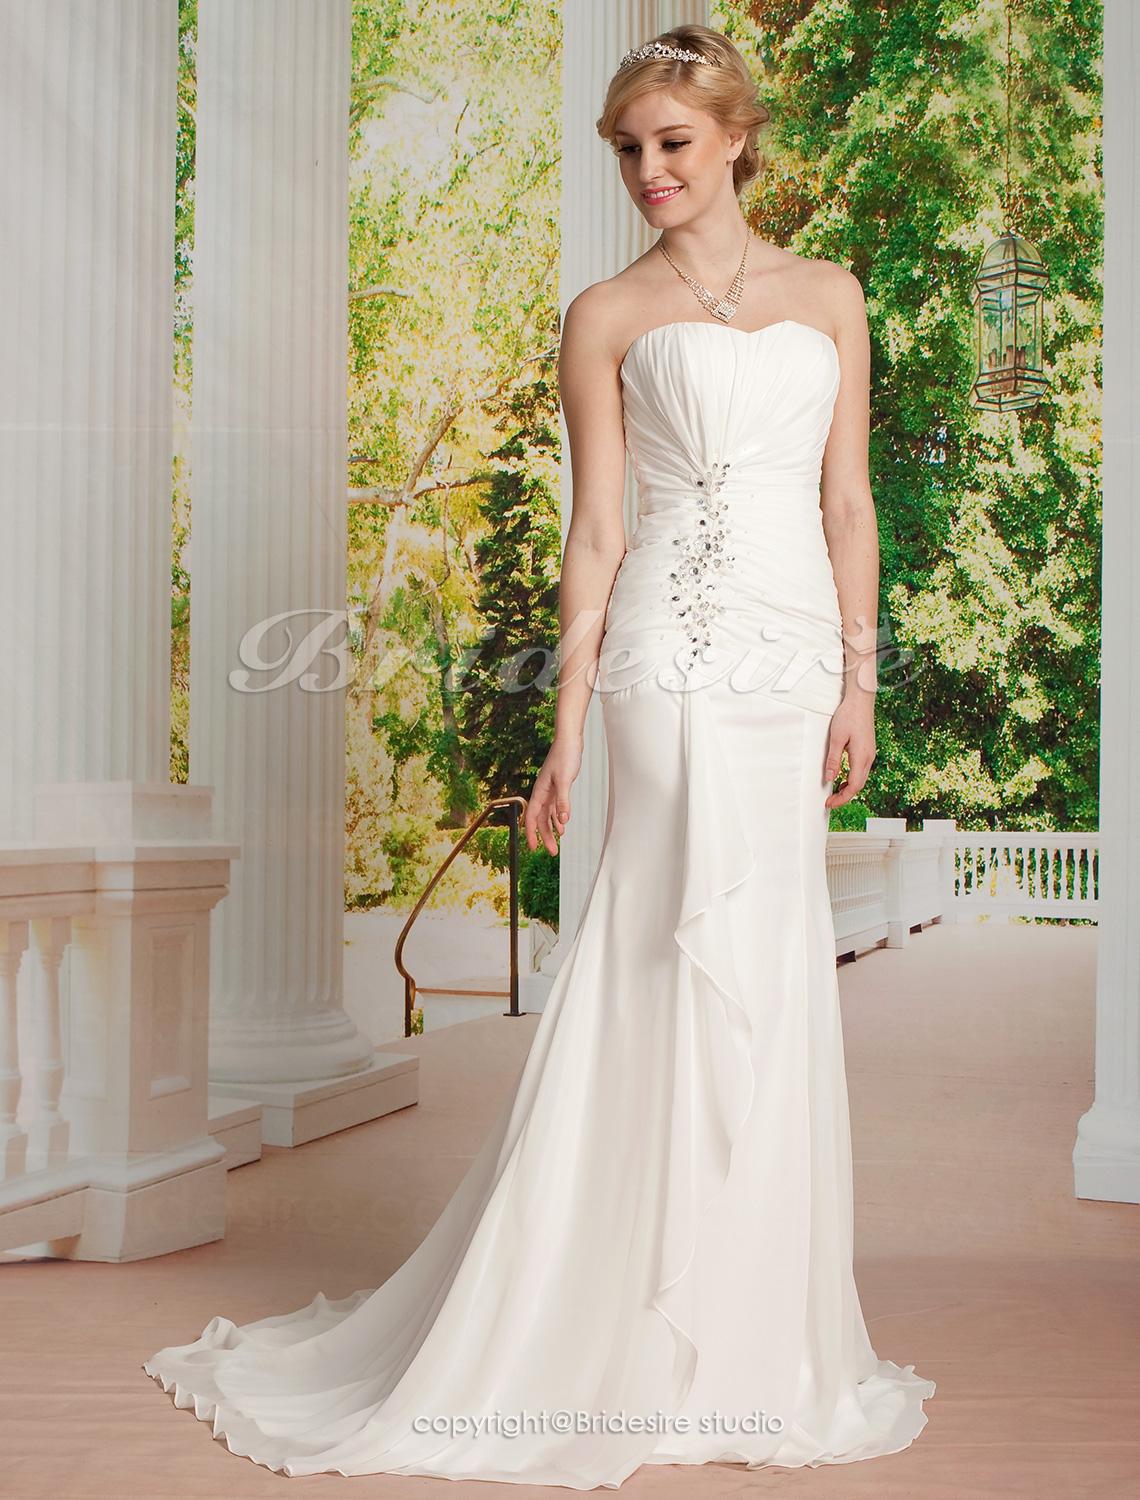 Sheath/Column Chiffon Sweetheart Court Train Strapless Wedding Dress